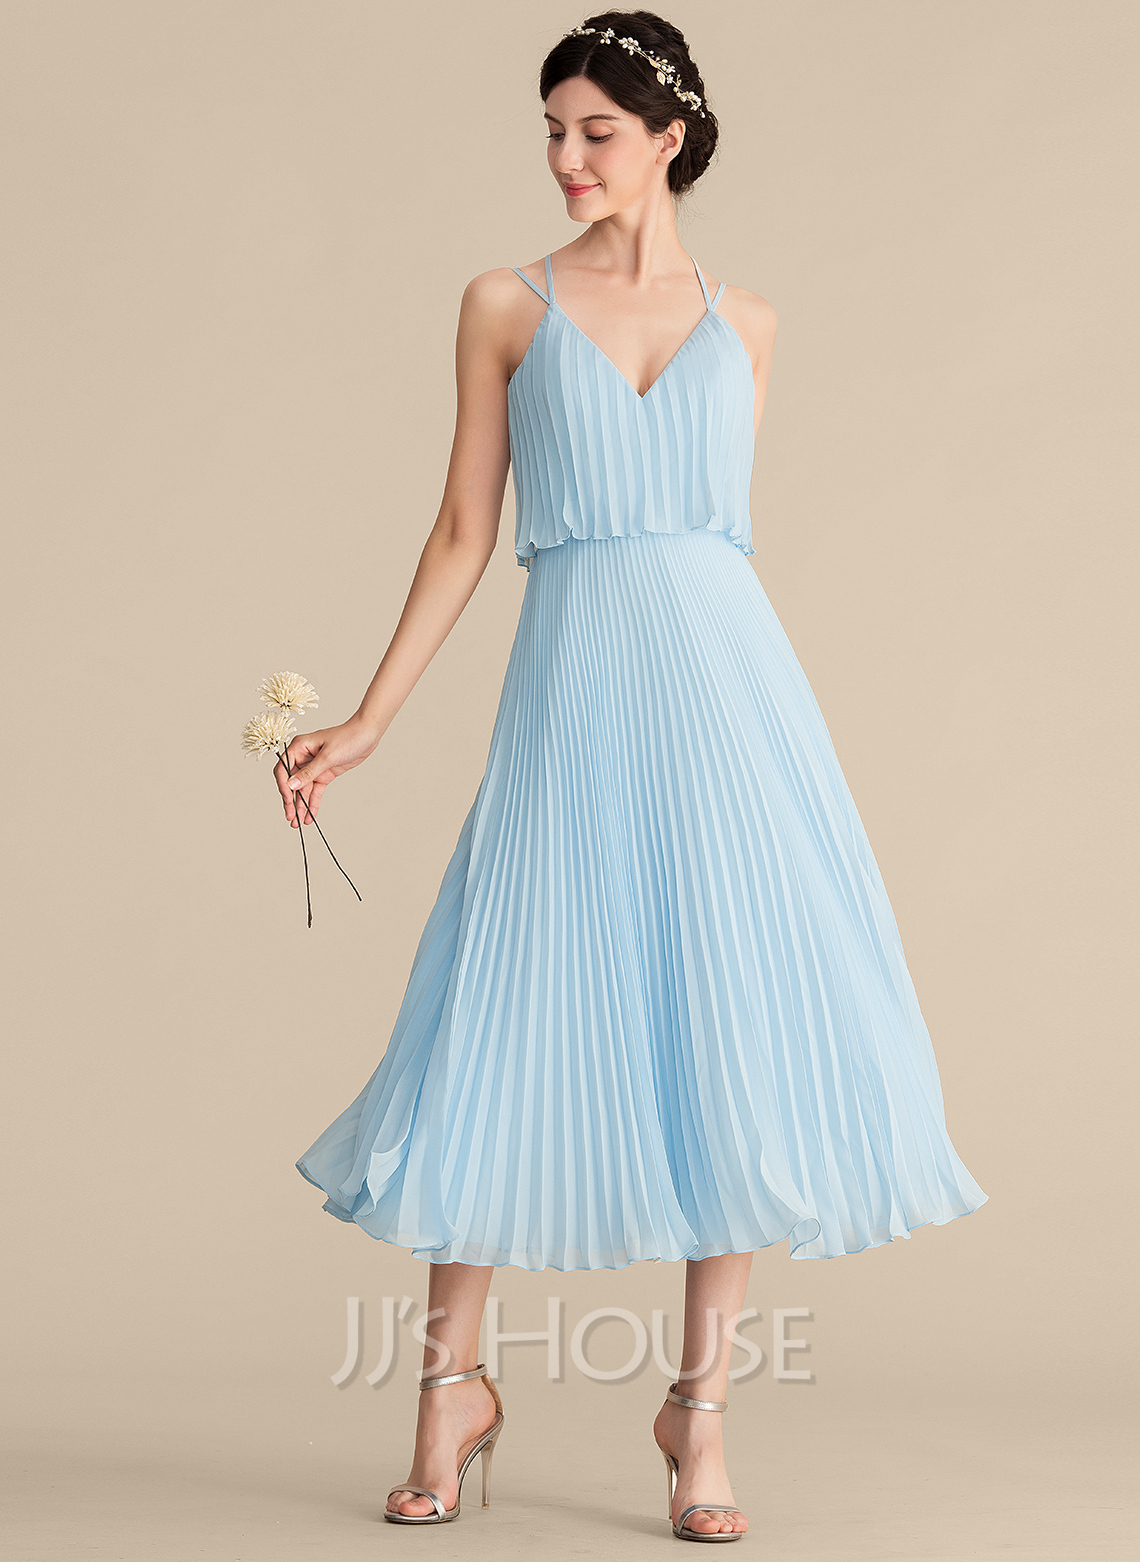 a74105aa533d A-Line/Princess V-neck Tea-Length Chiffon Bridesmaid Dress With Pleated.  Loading zoom